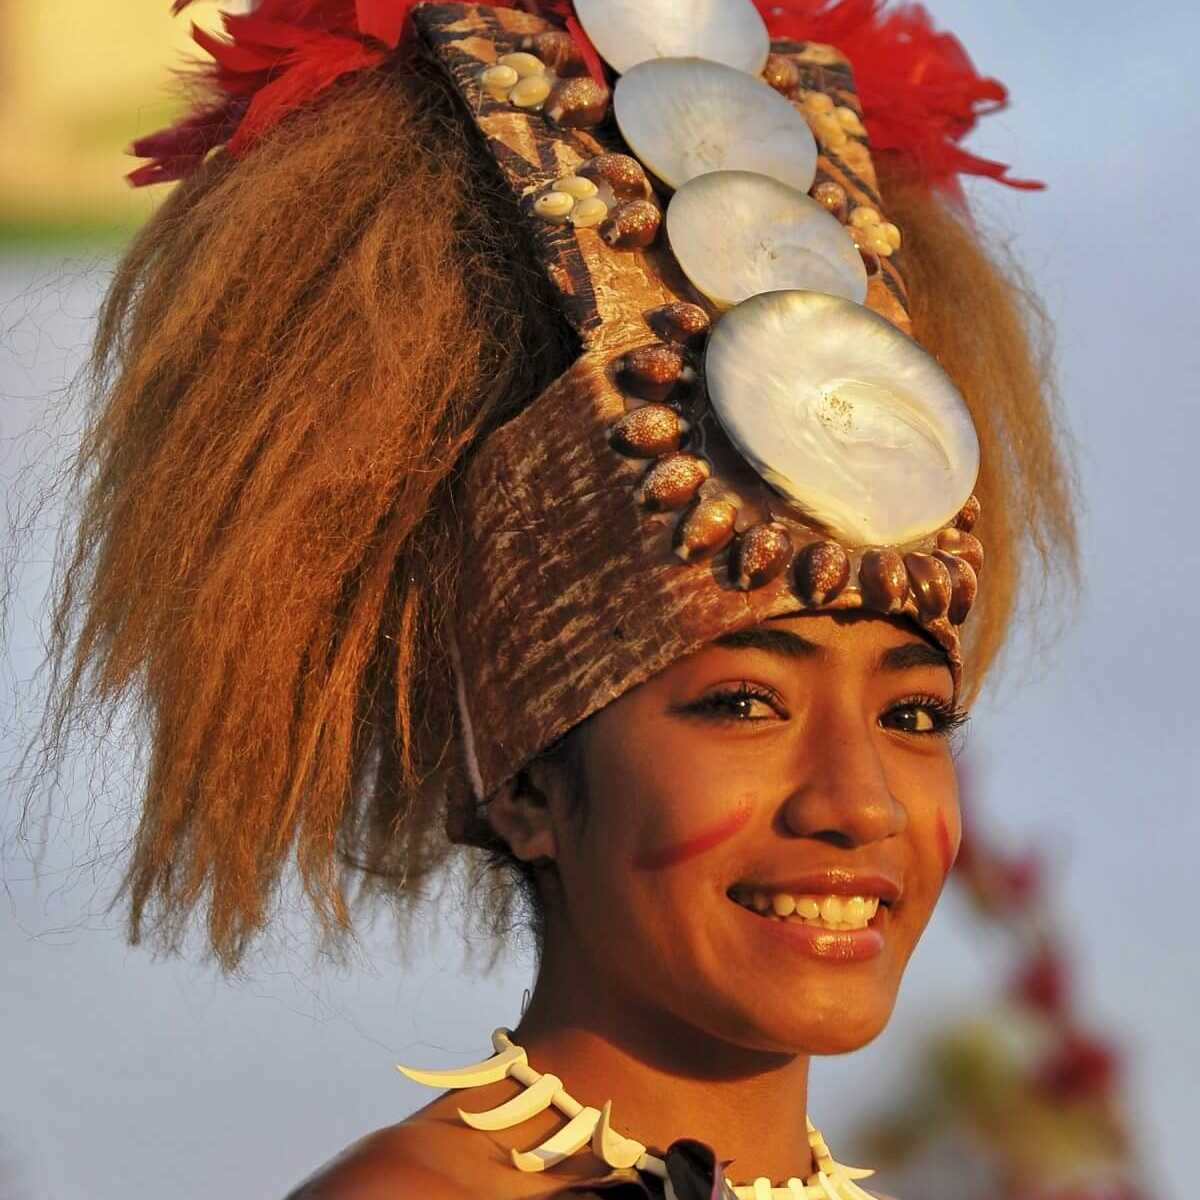 Samoan Woman Rich Cruse